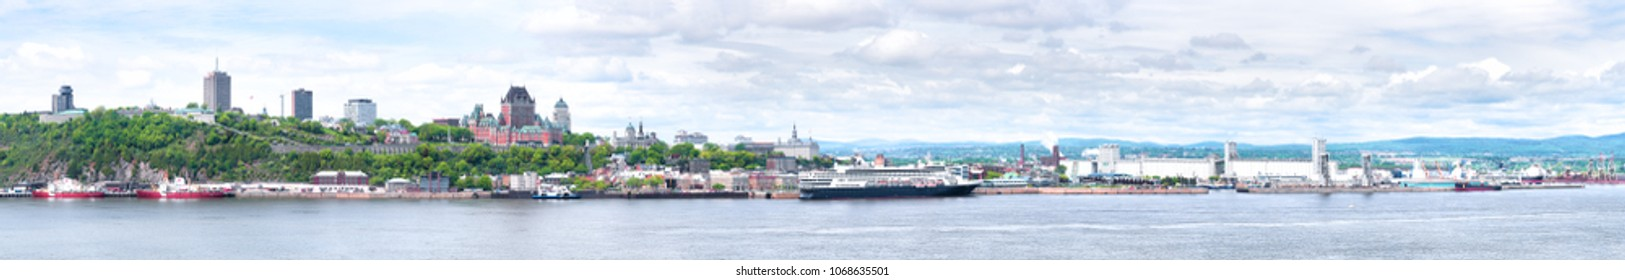 Cityscape and skyline panoramic panorama of Quebec City with Saint Lawrence river and boats